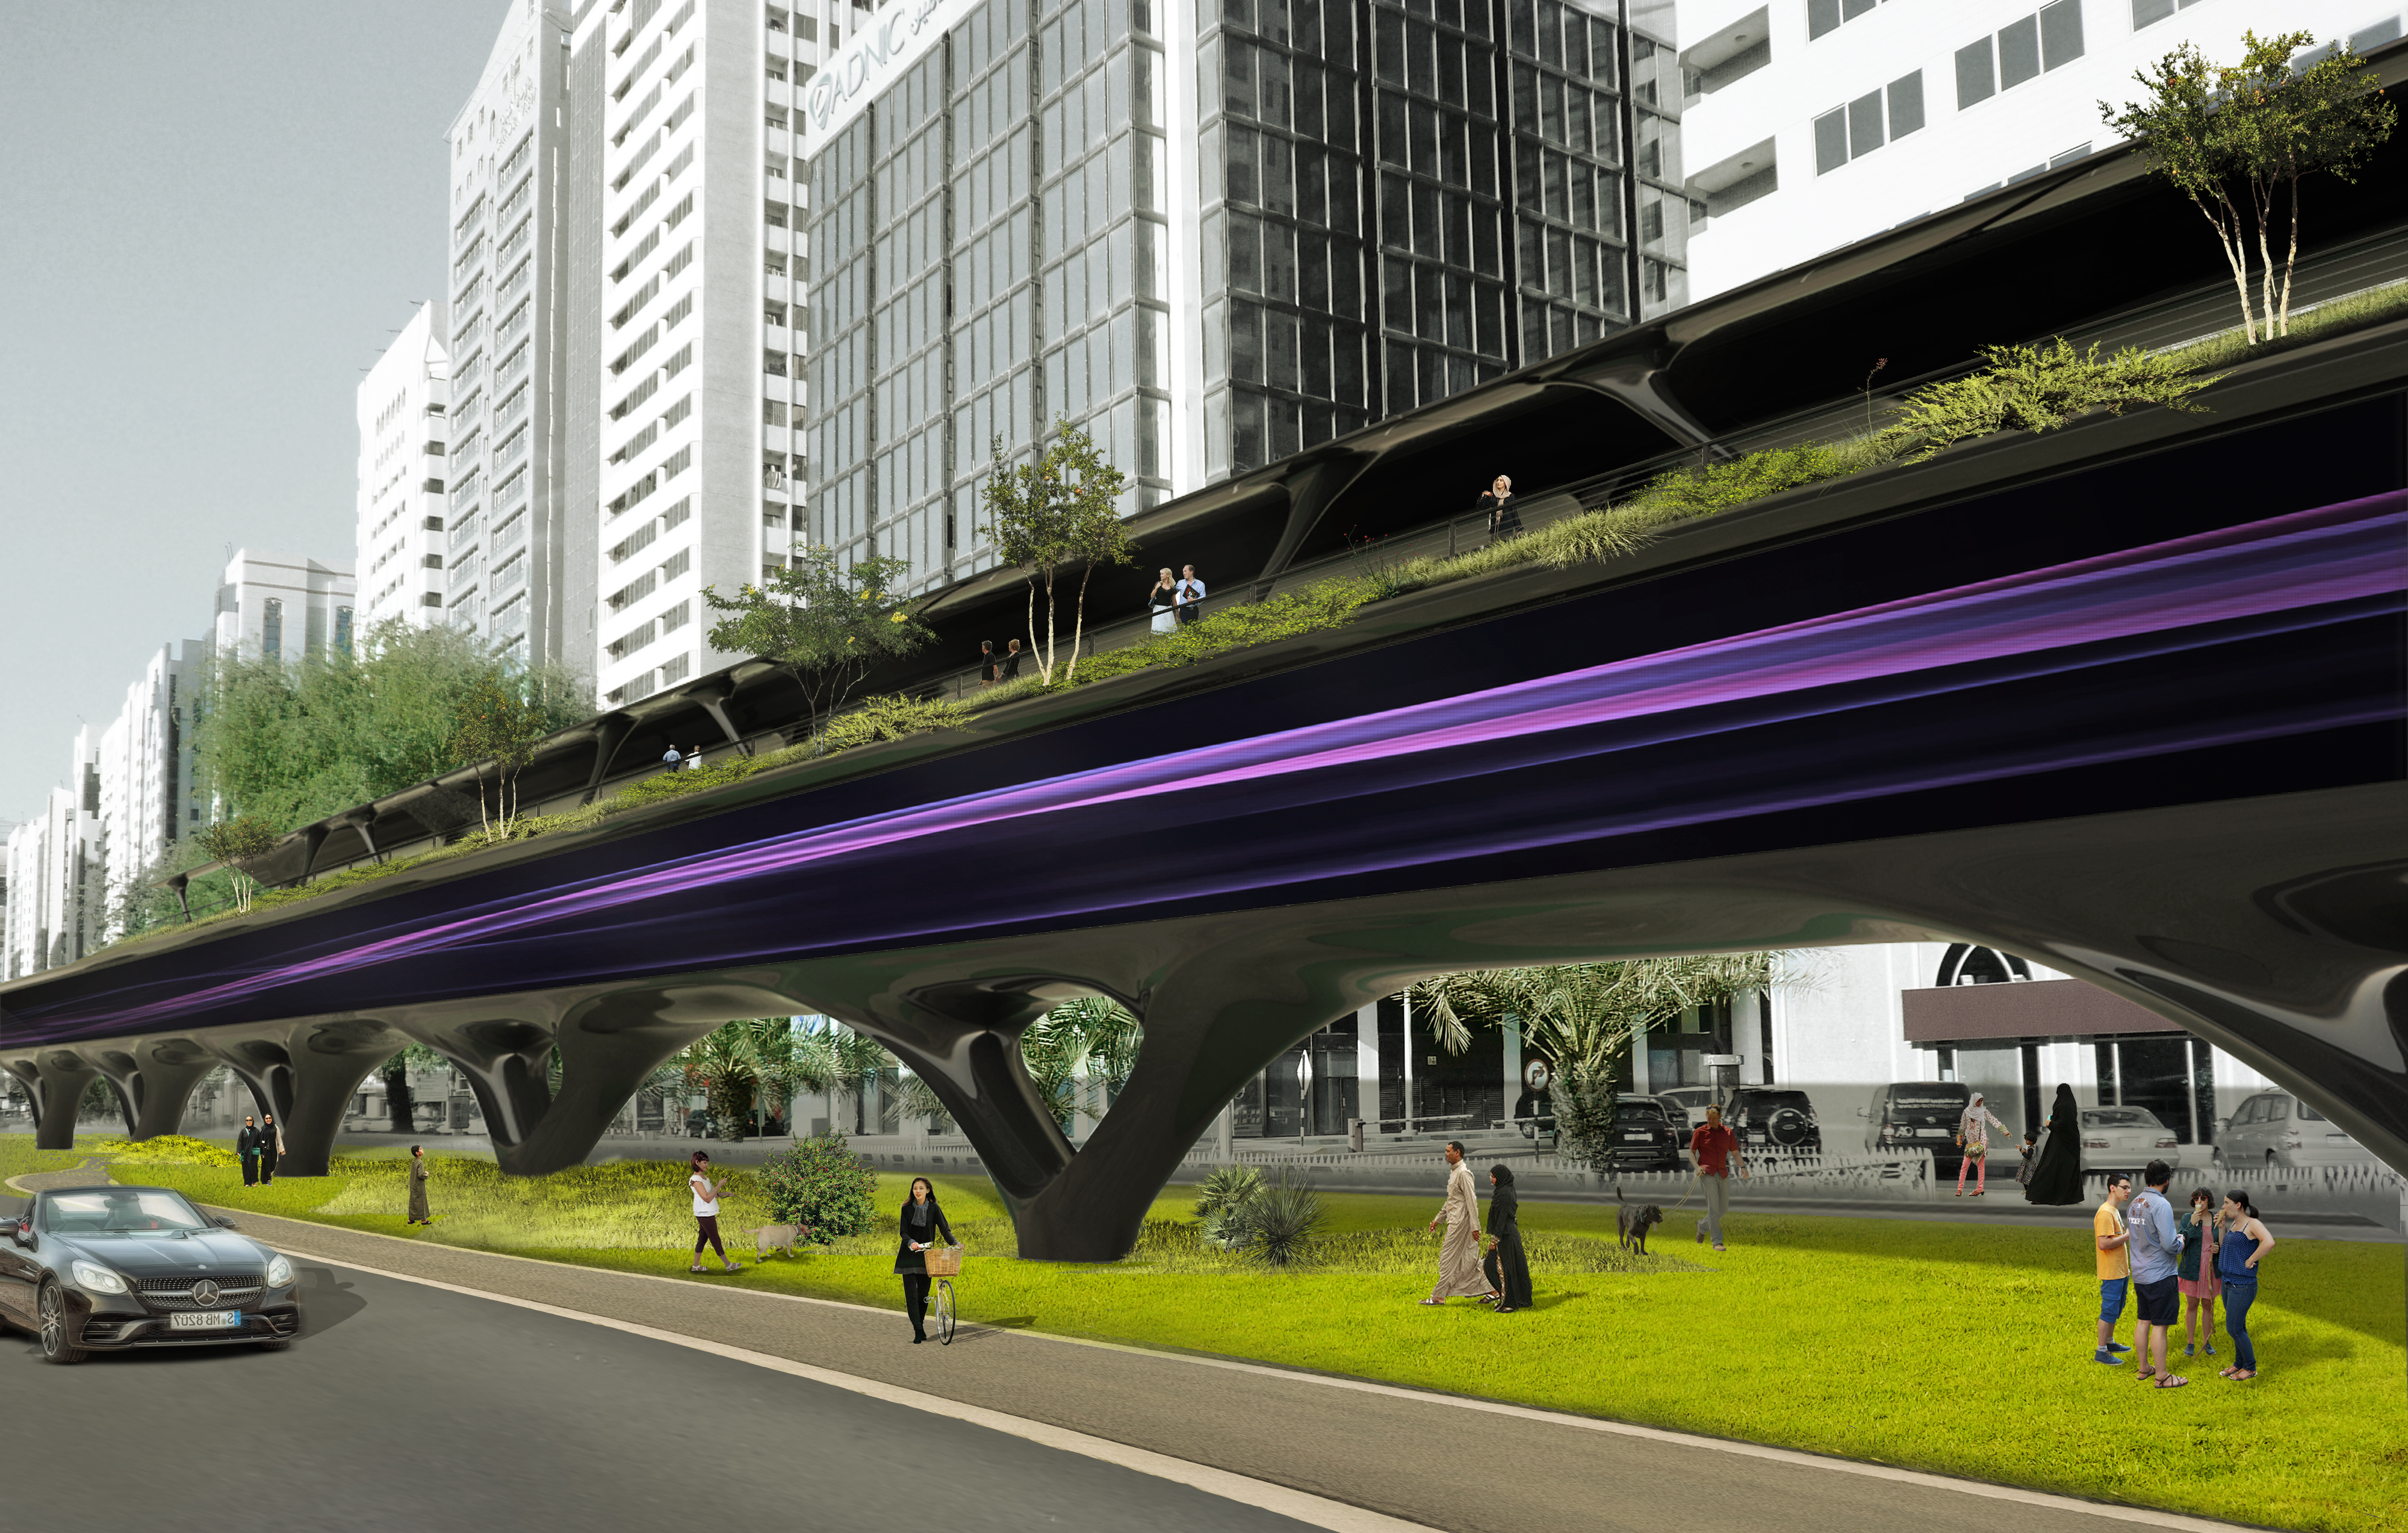 MAD imagines Hyperloop structures as urban farms